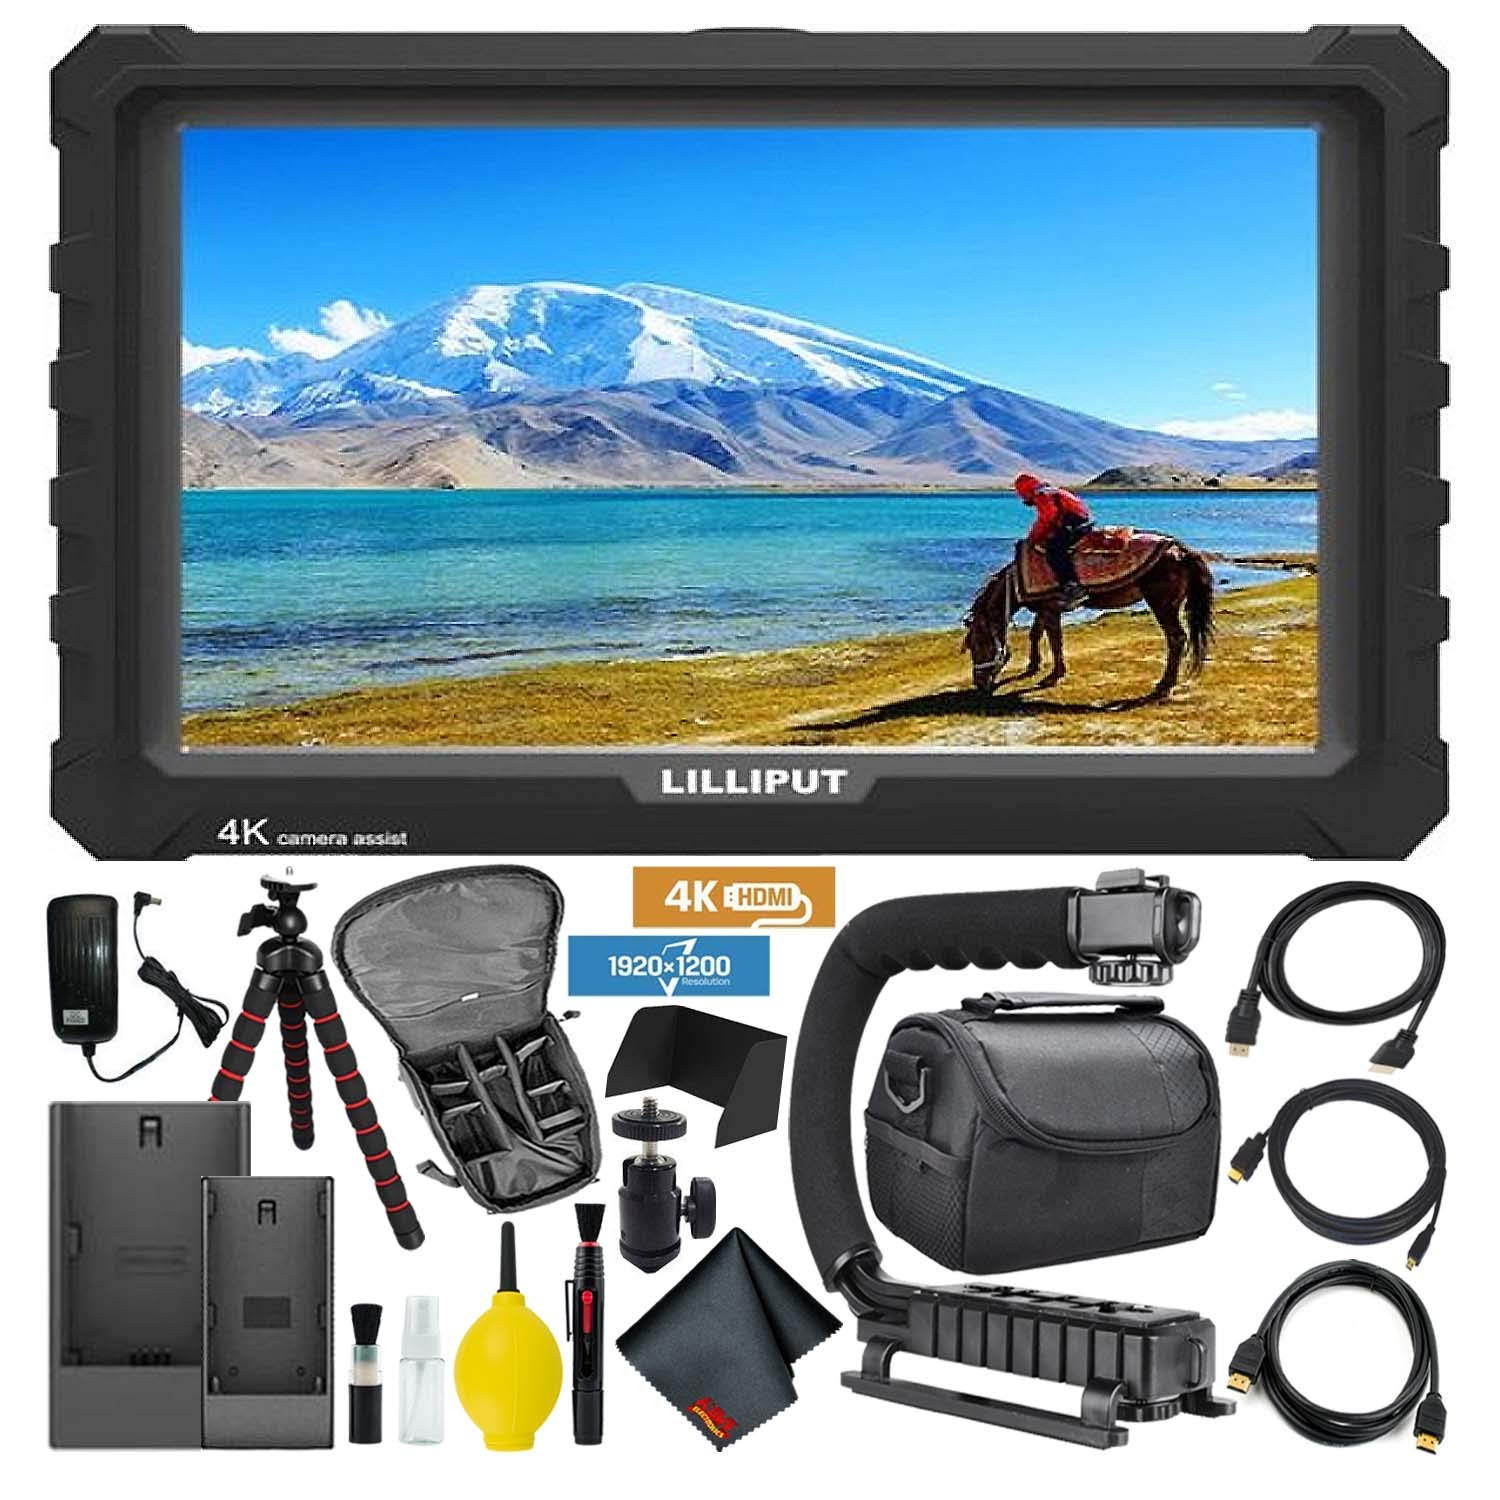 Lilliput A7S Full HD 7 Inch IPS Video Camera Field Monitor w/ 4K Support (Black Case) HDMI Ports Advanced Bundle w/Stabilizing Handle, Tripod, HDMI Cables, Carrying Case, Backpack, and Cleaning Kit